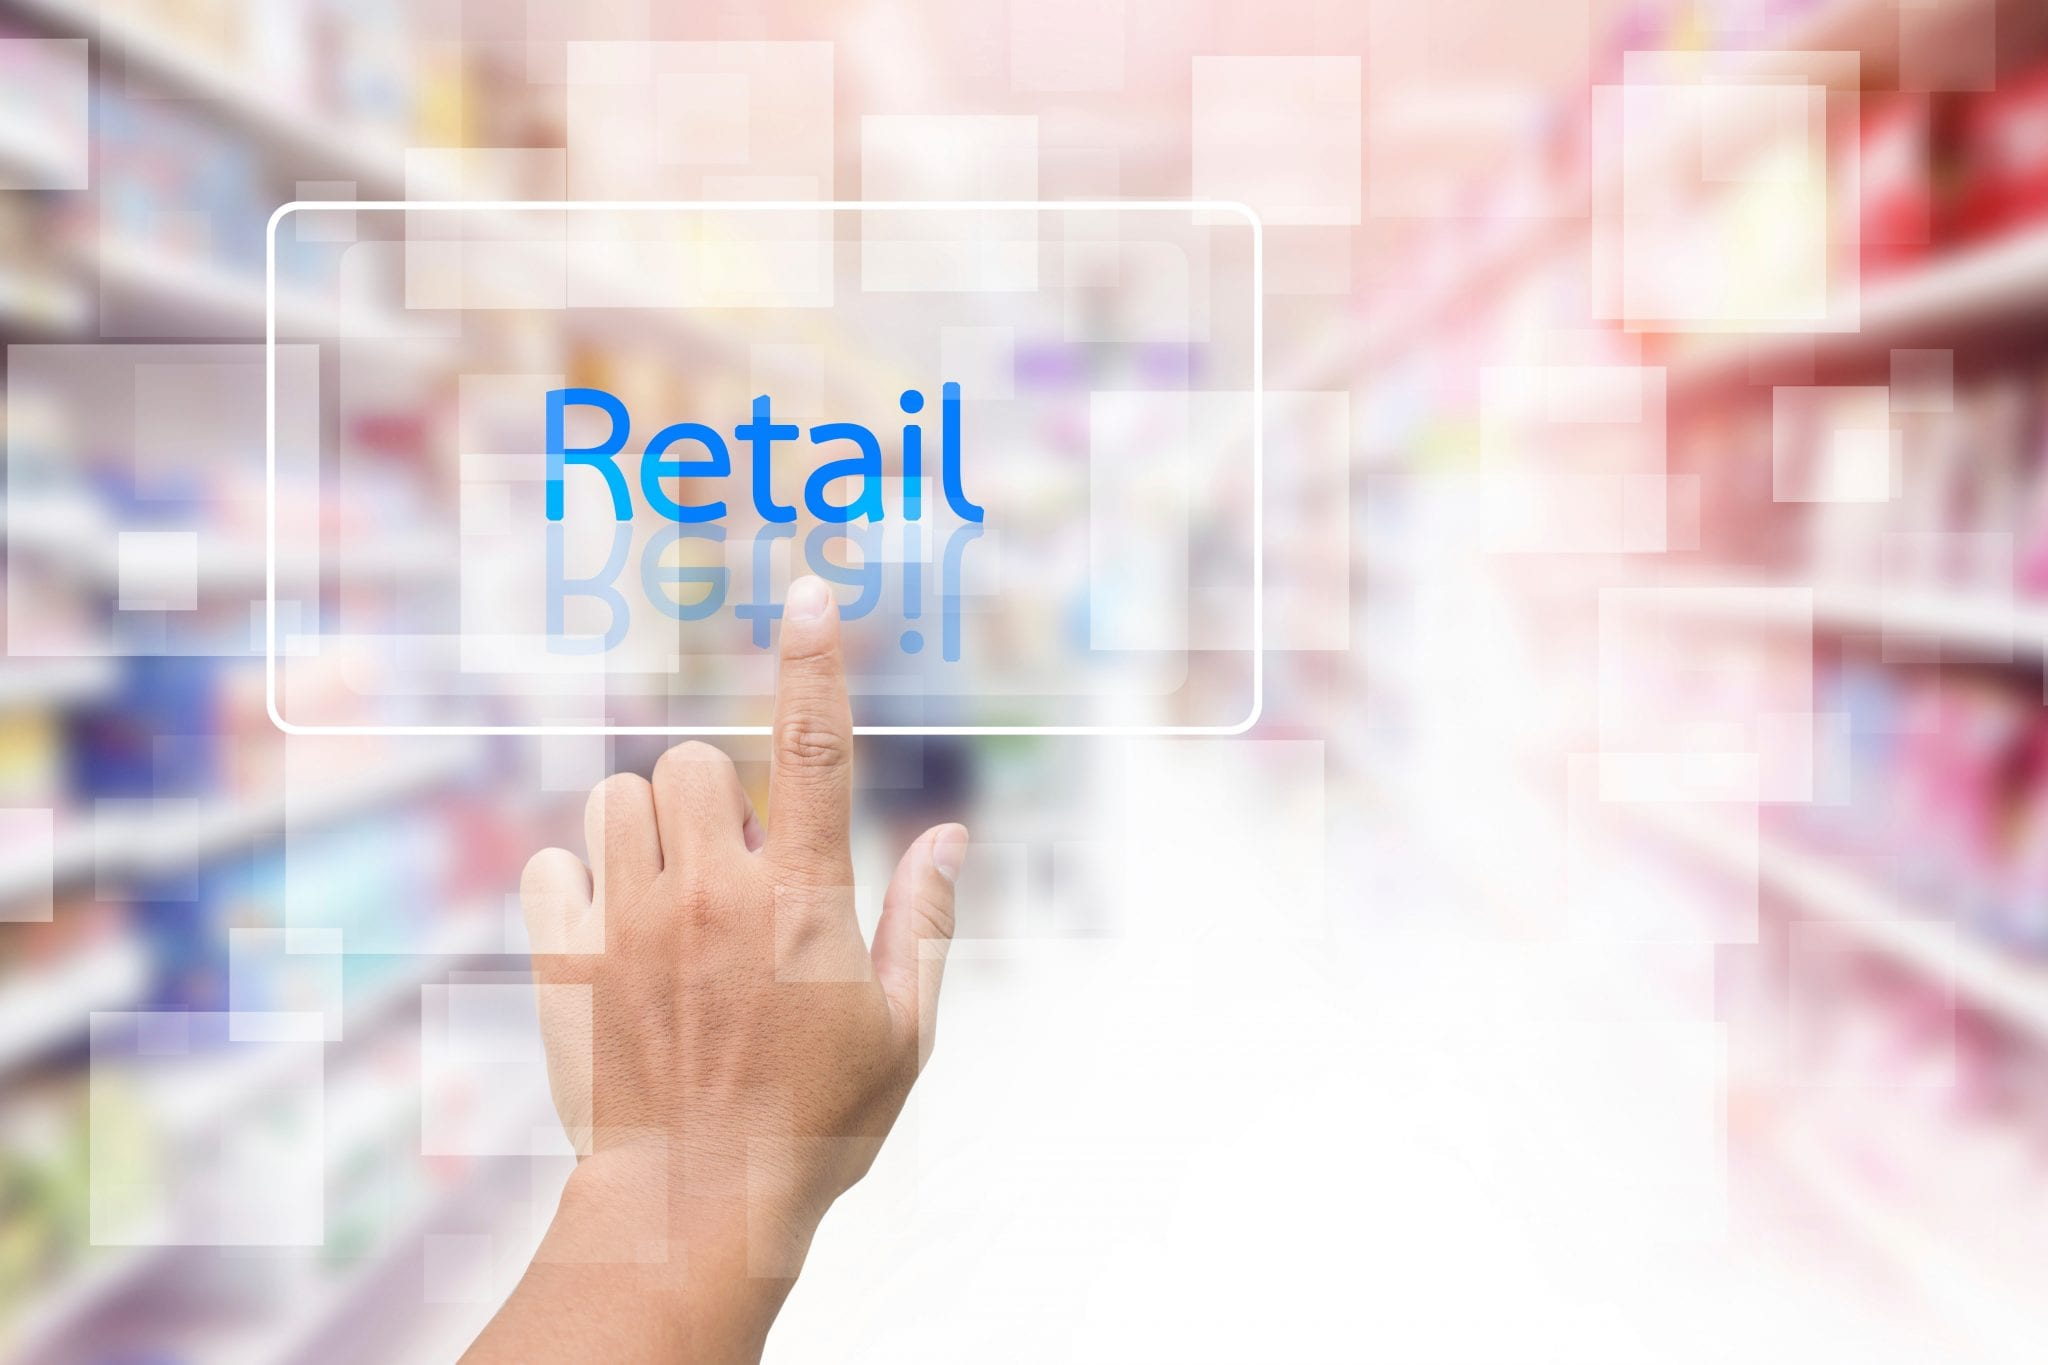 retail data blog image